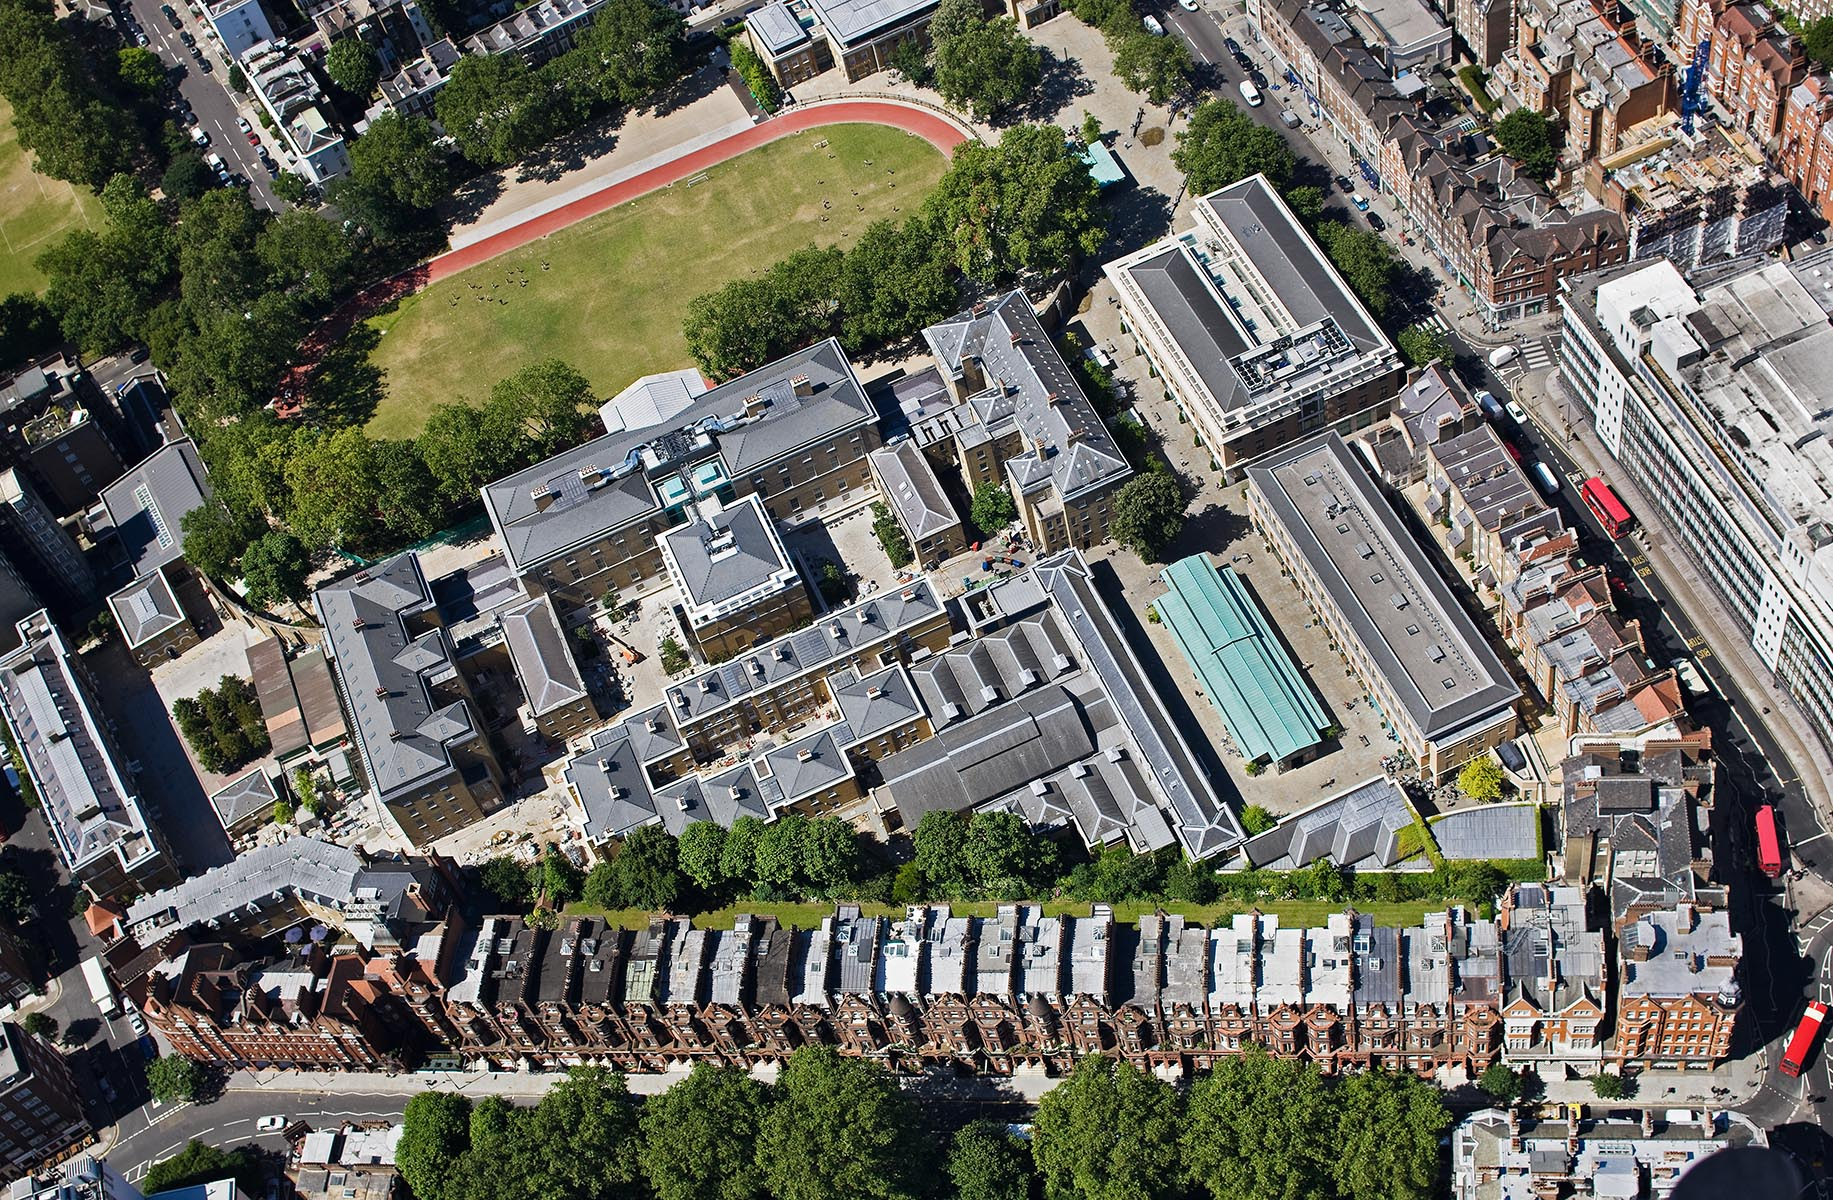 View taking from helicopter showing masterplan of innovative mixed use urban development creating open space for leisure, shopping and living and access to the new Saatchi Gallery.Client: PDP LDN